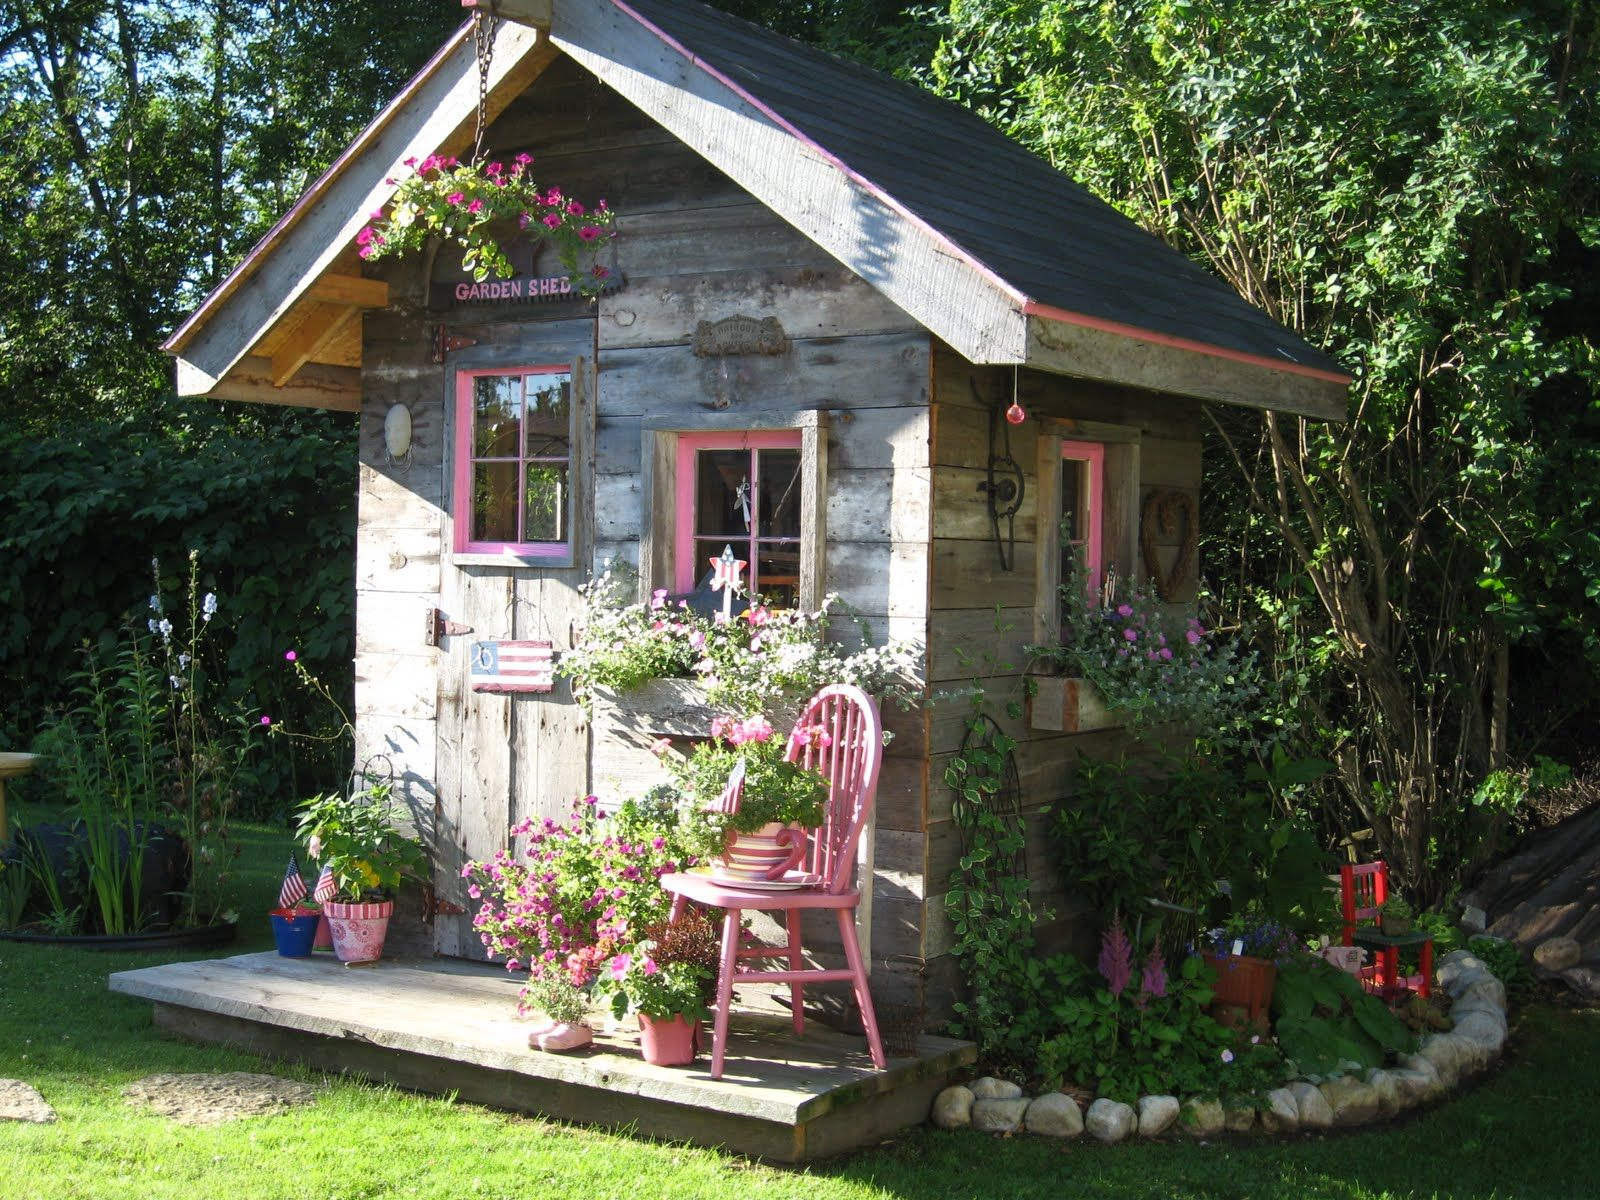 Old garden house - Quaint Garden Shed In Menominee Michigan Built By Ken Ceesay Using Recycled Materials Photo